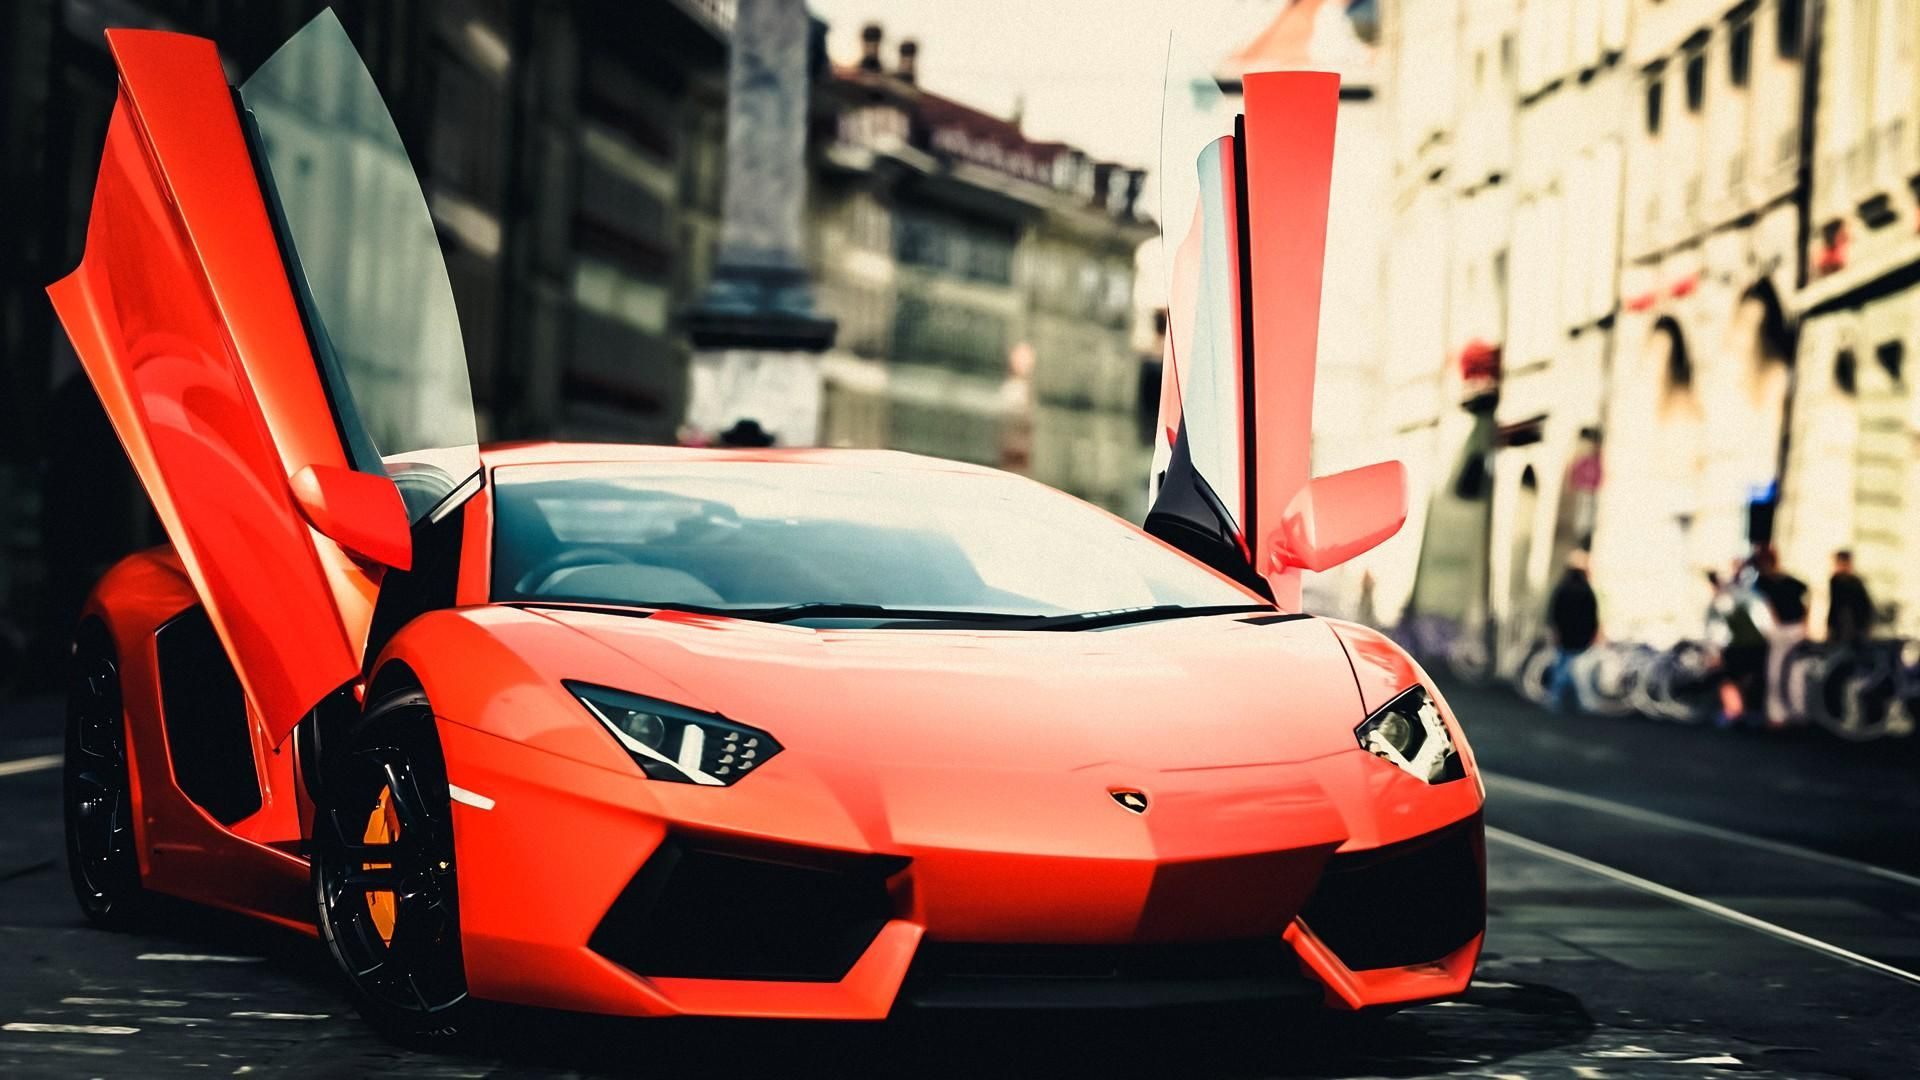 Lamborghini Wallpaper Wide Vehicles Wallpapers Pinterest